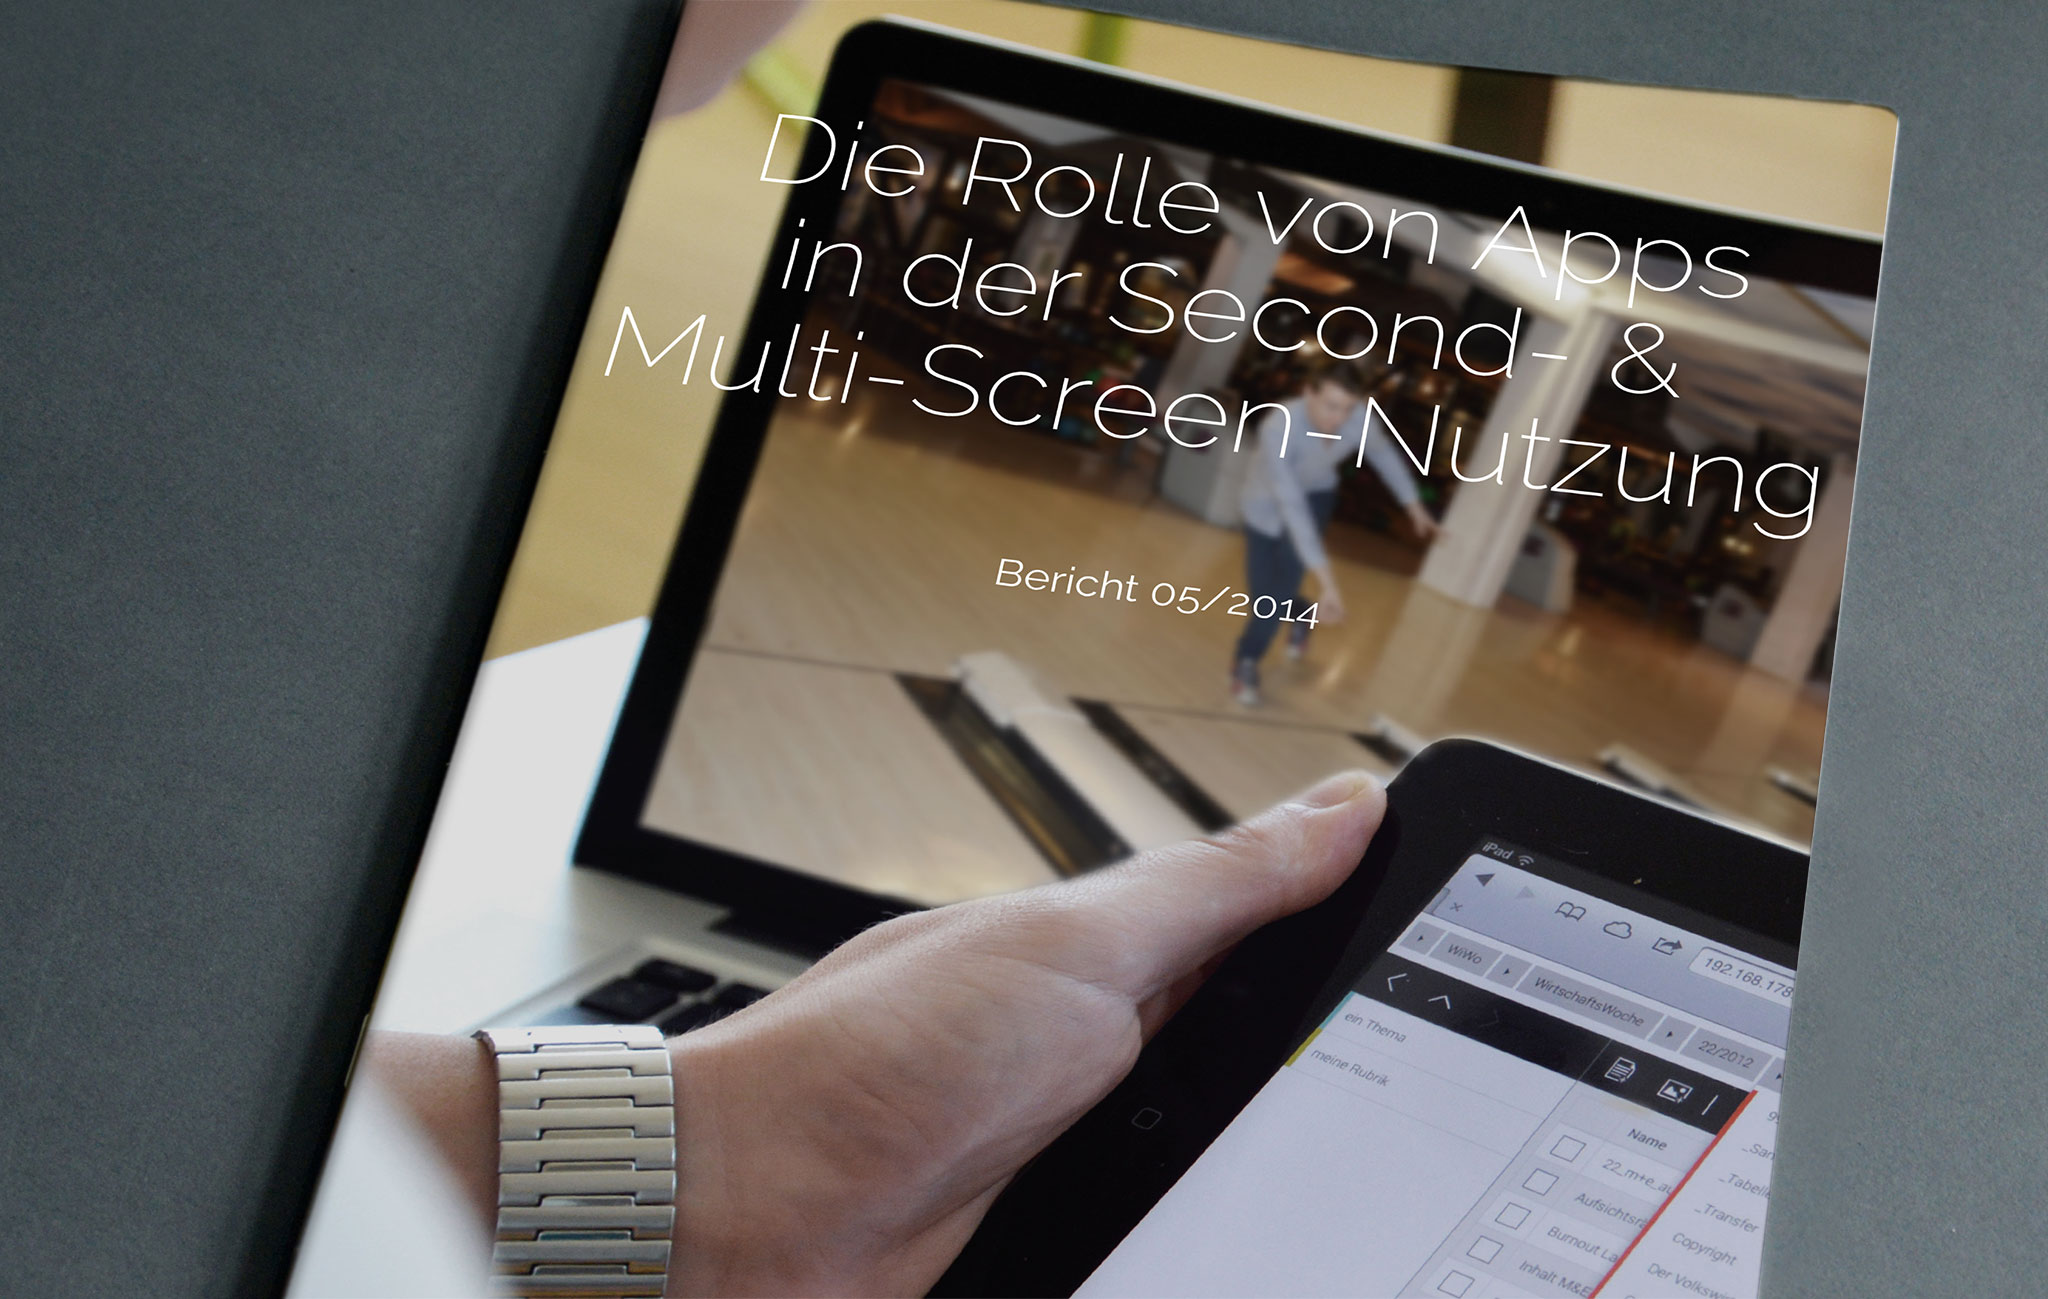 Second Screen Kampagne Deckblatt